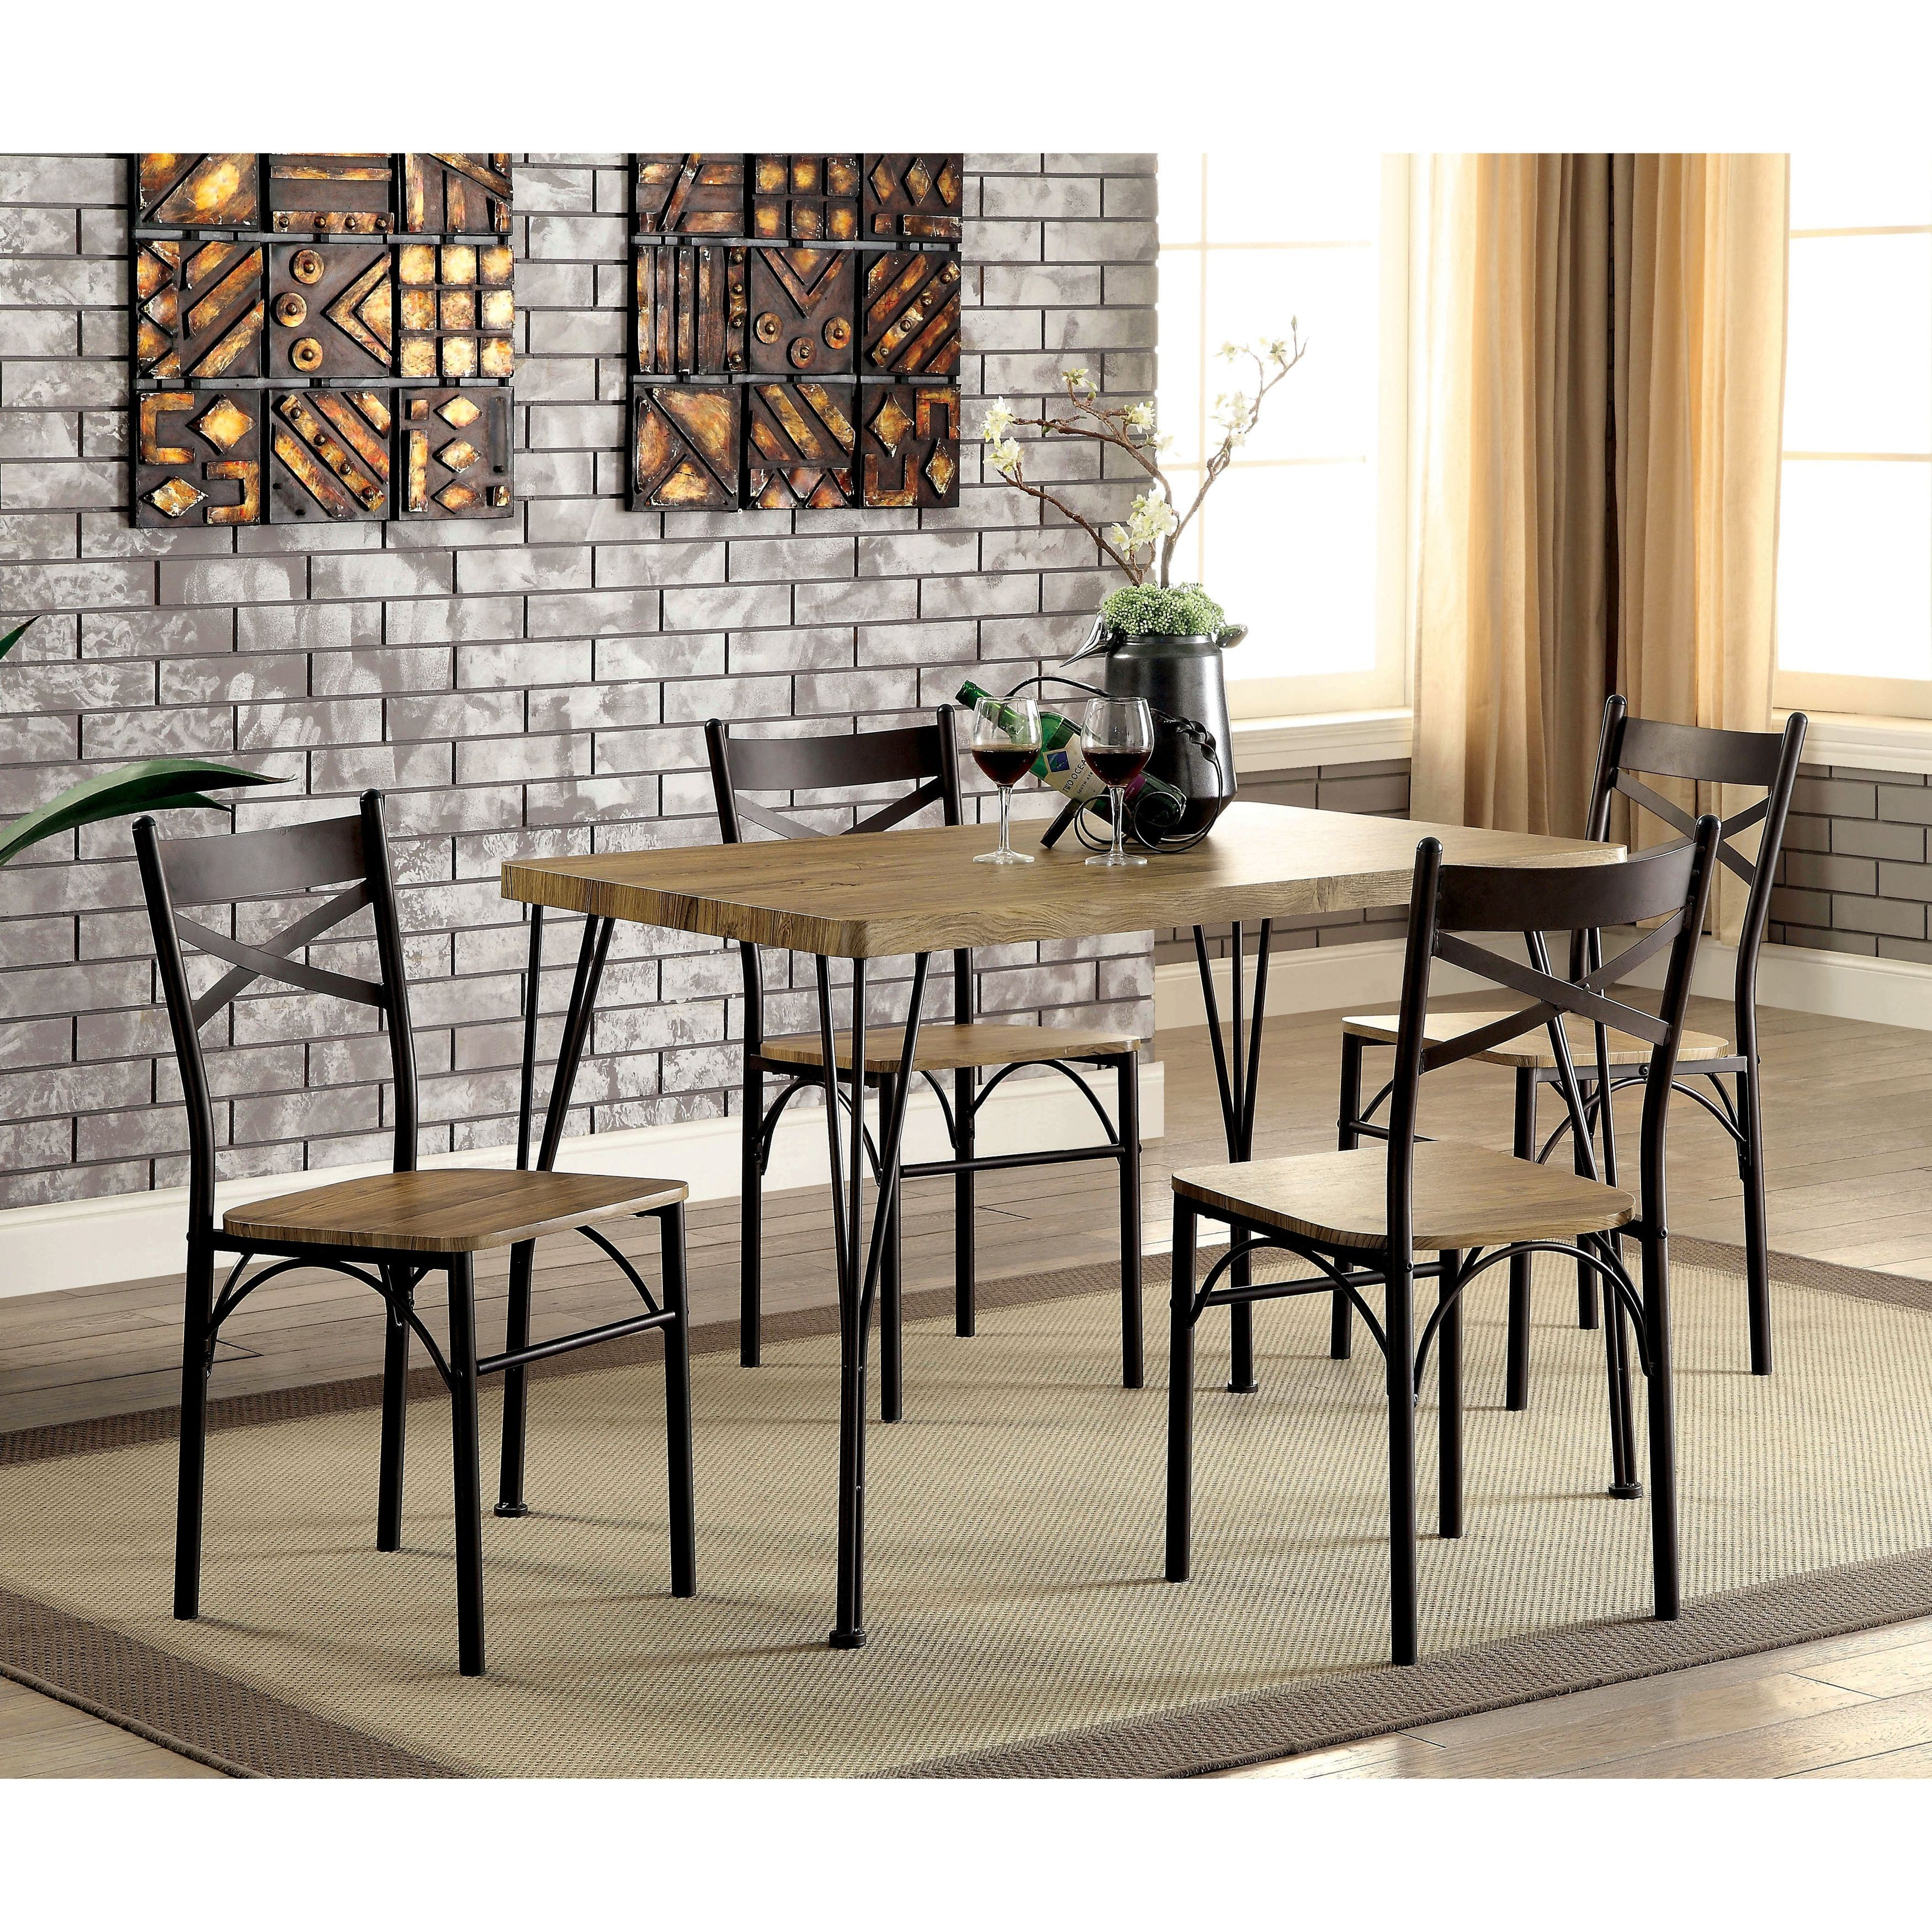 Furniture Of America Hathway Industrial 5 Piece Dark Bronze Small Pertaining To Most Recently Released Middleport 5 Piece Dining Sets (View 6 of 20)